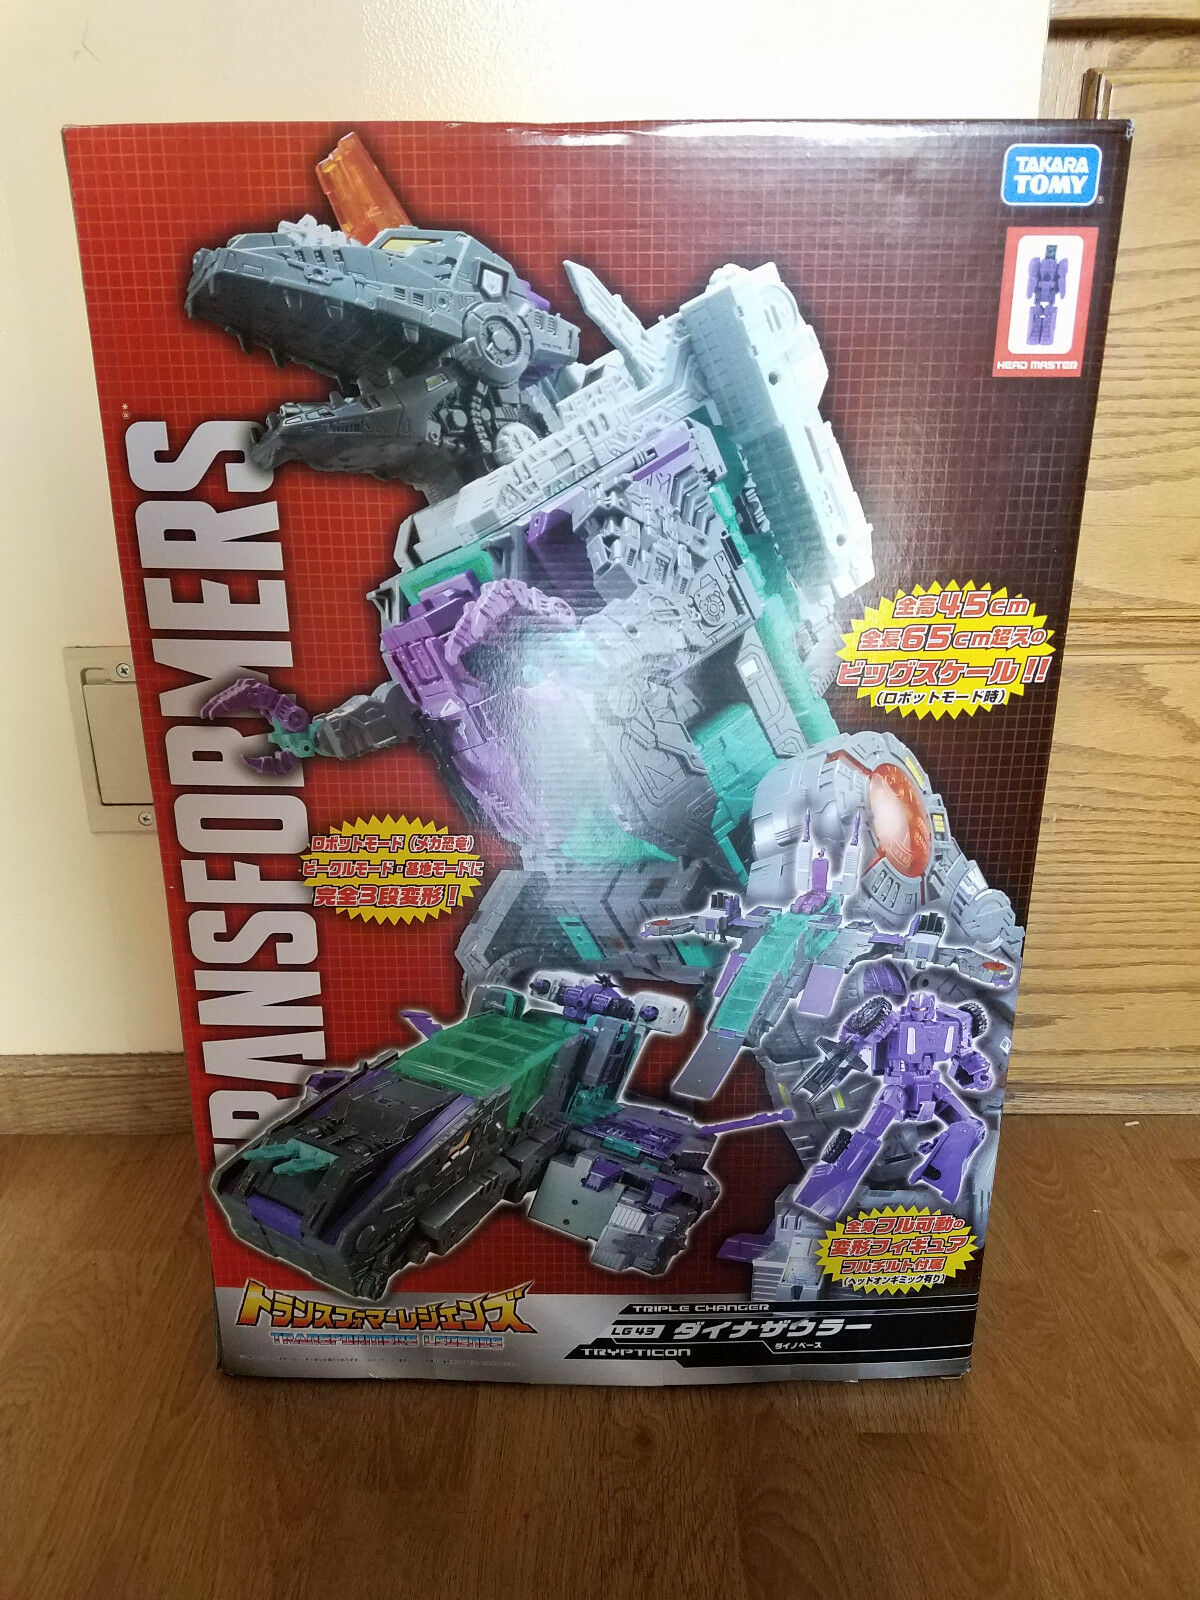 2017 transformatoren takara lg-43 legenden dinosaurier trypticon misb